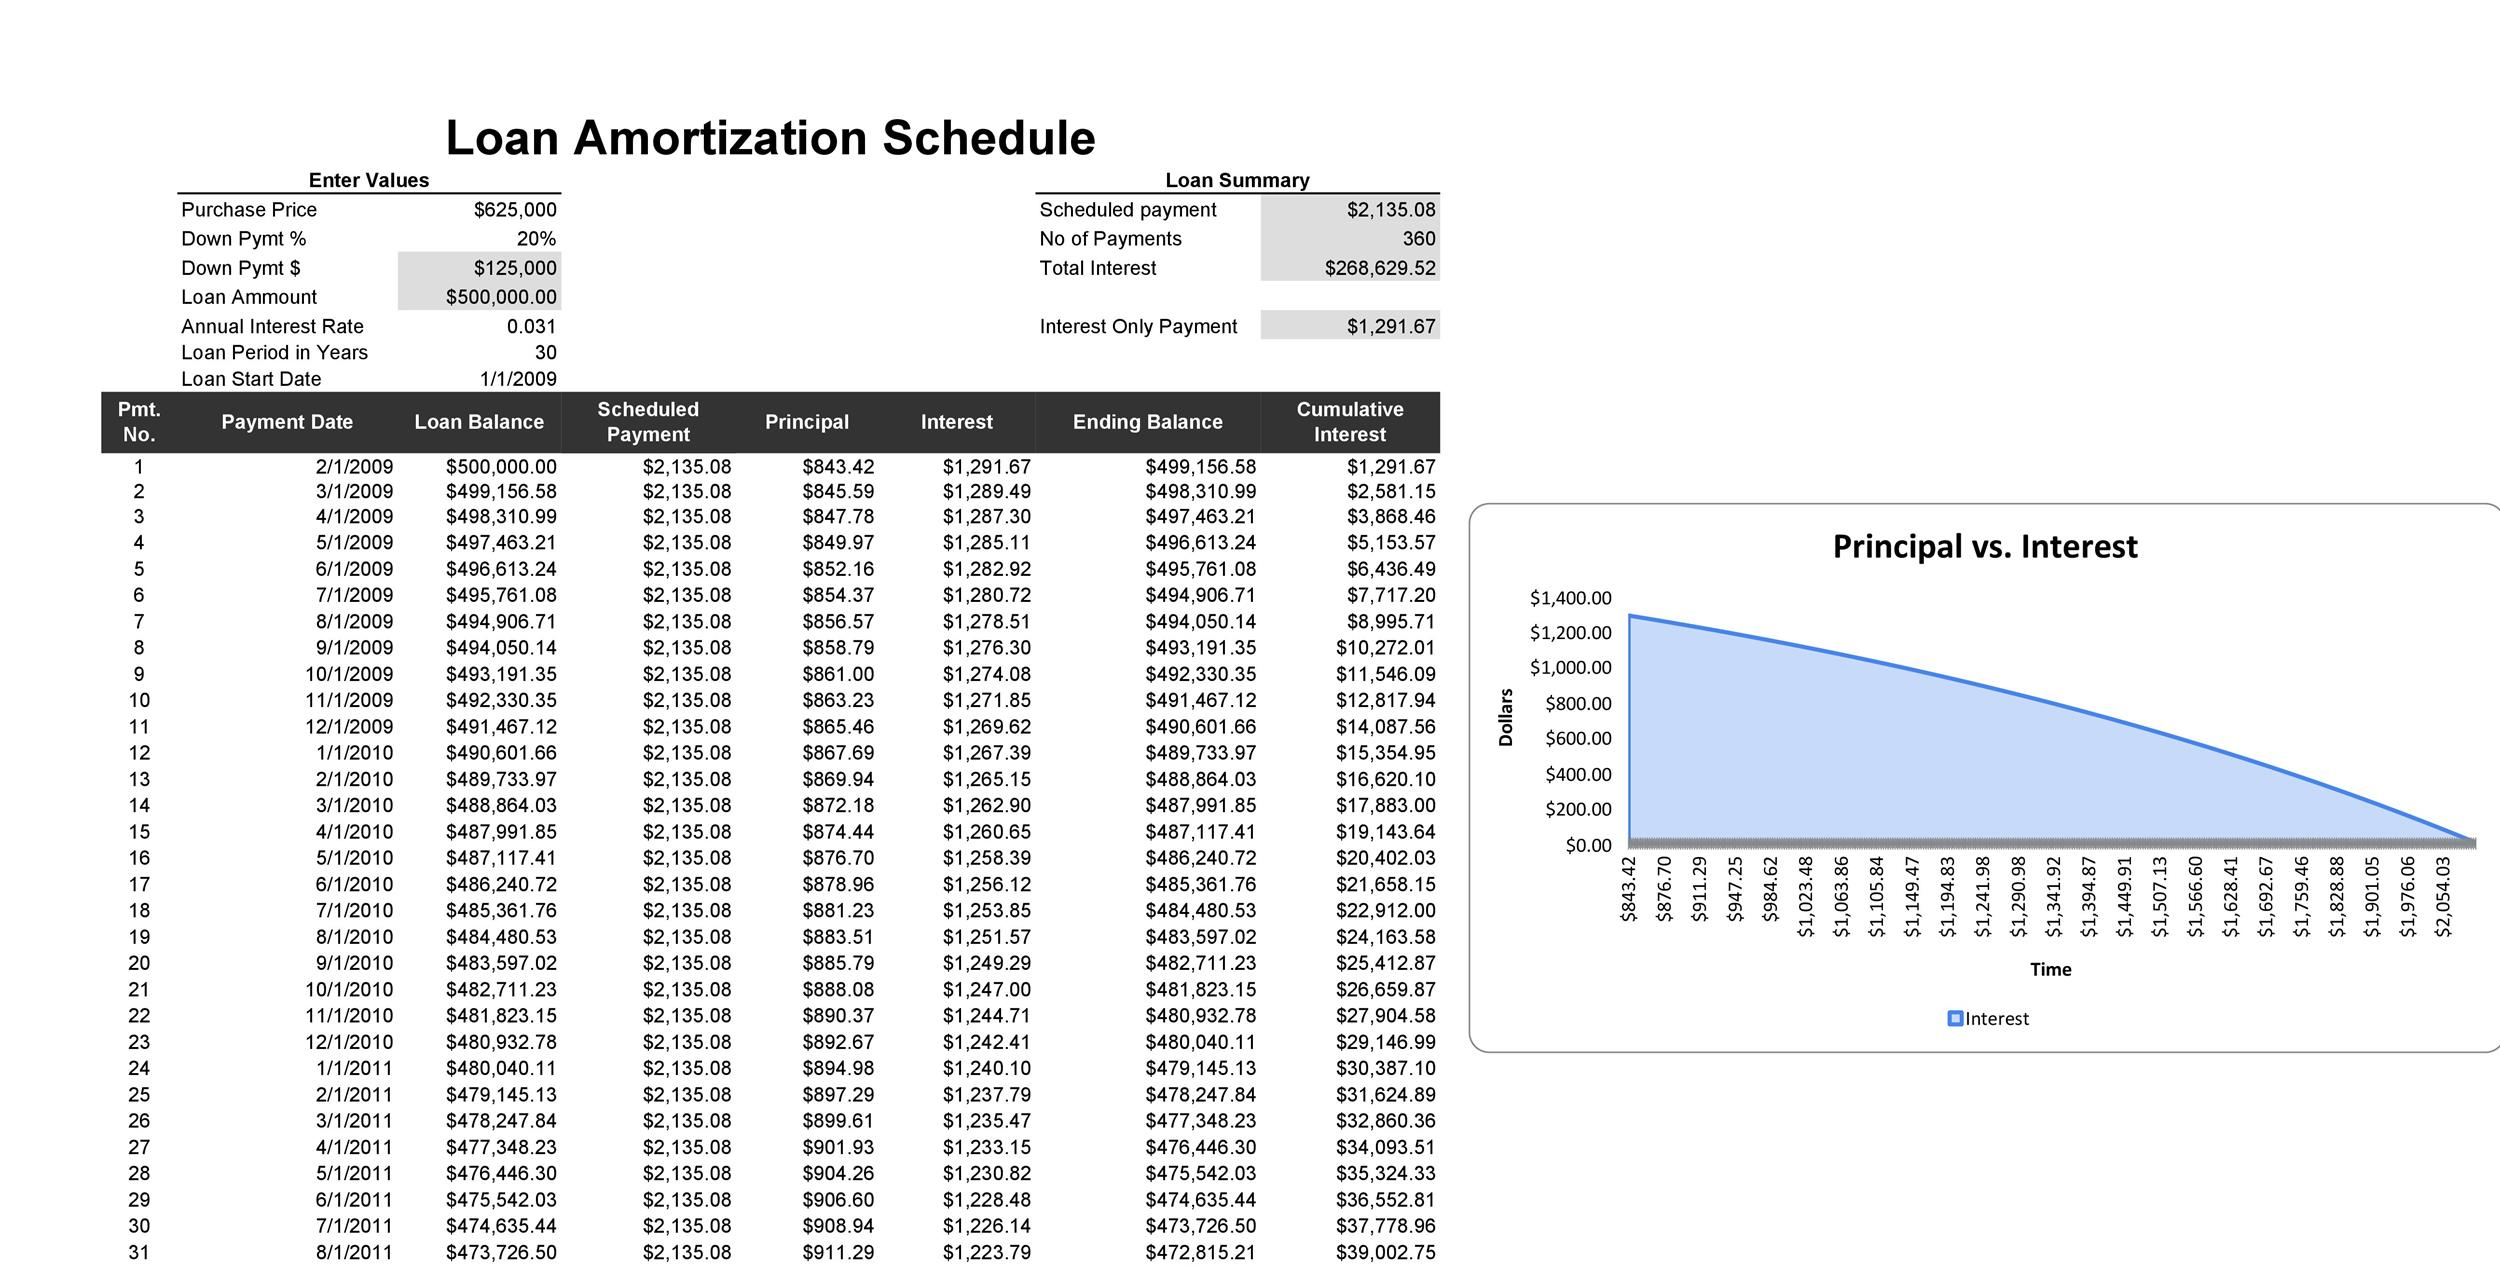 28 Tables to Calculate Loan Amortization Schedule (Excel) - Template Lab - How To Calculate An Amortization Schedule In Excel